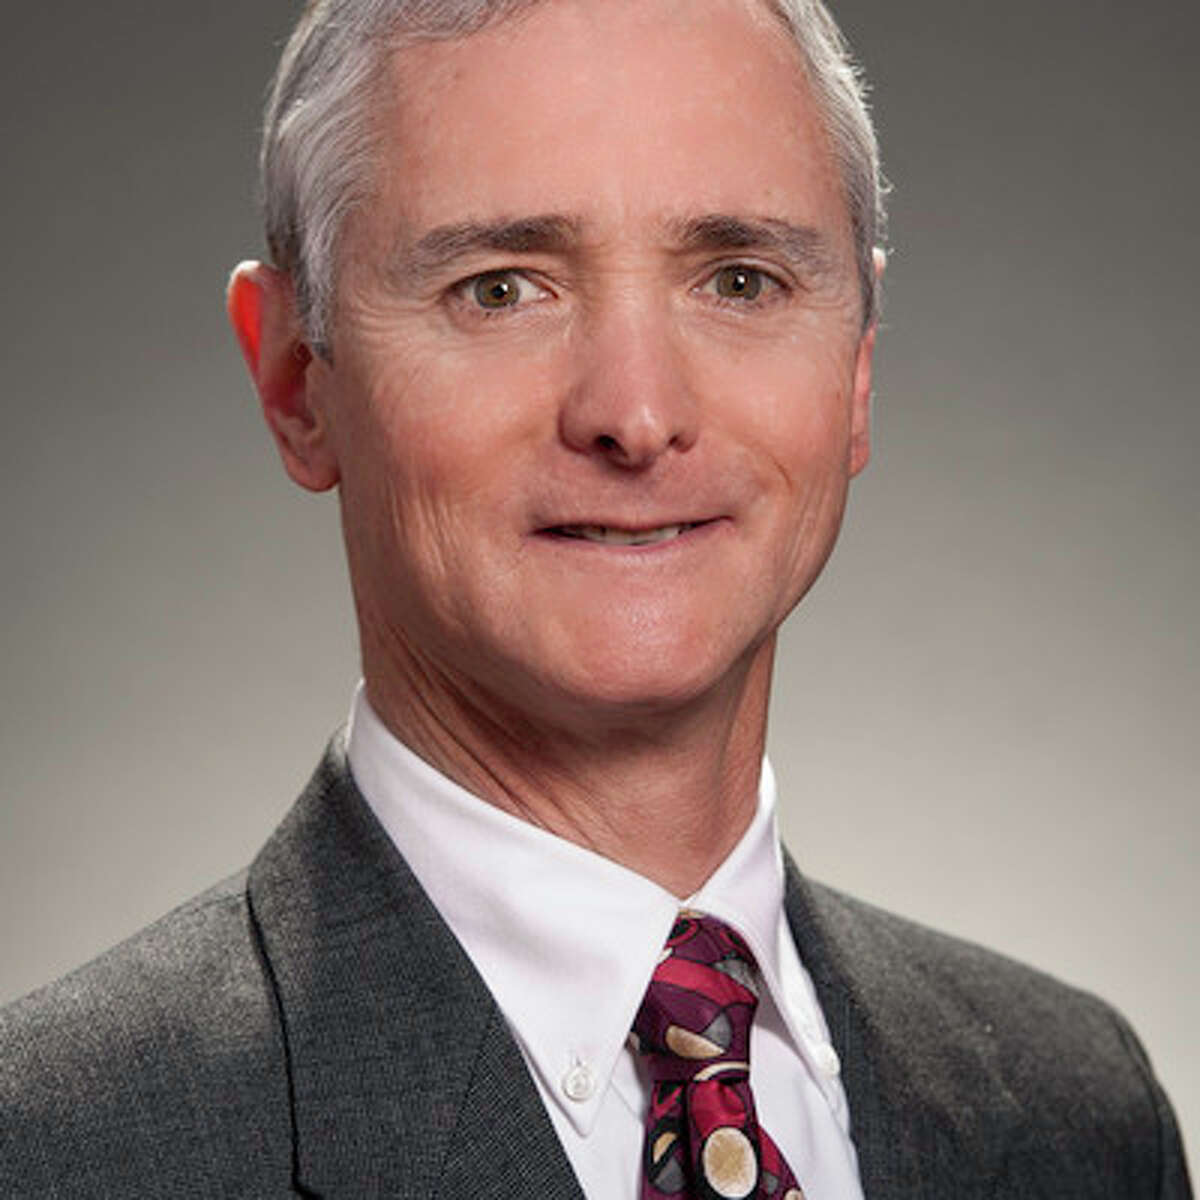 Dr. Harold E. Gottlieb has been named the new chief medical officer for the Memorial Hermann Memorial City Medical Center.